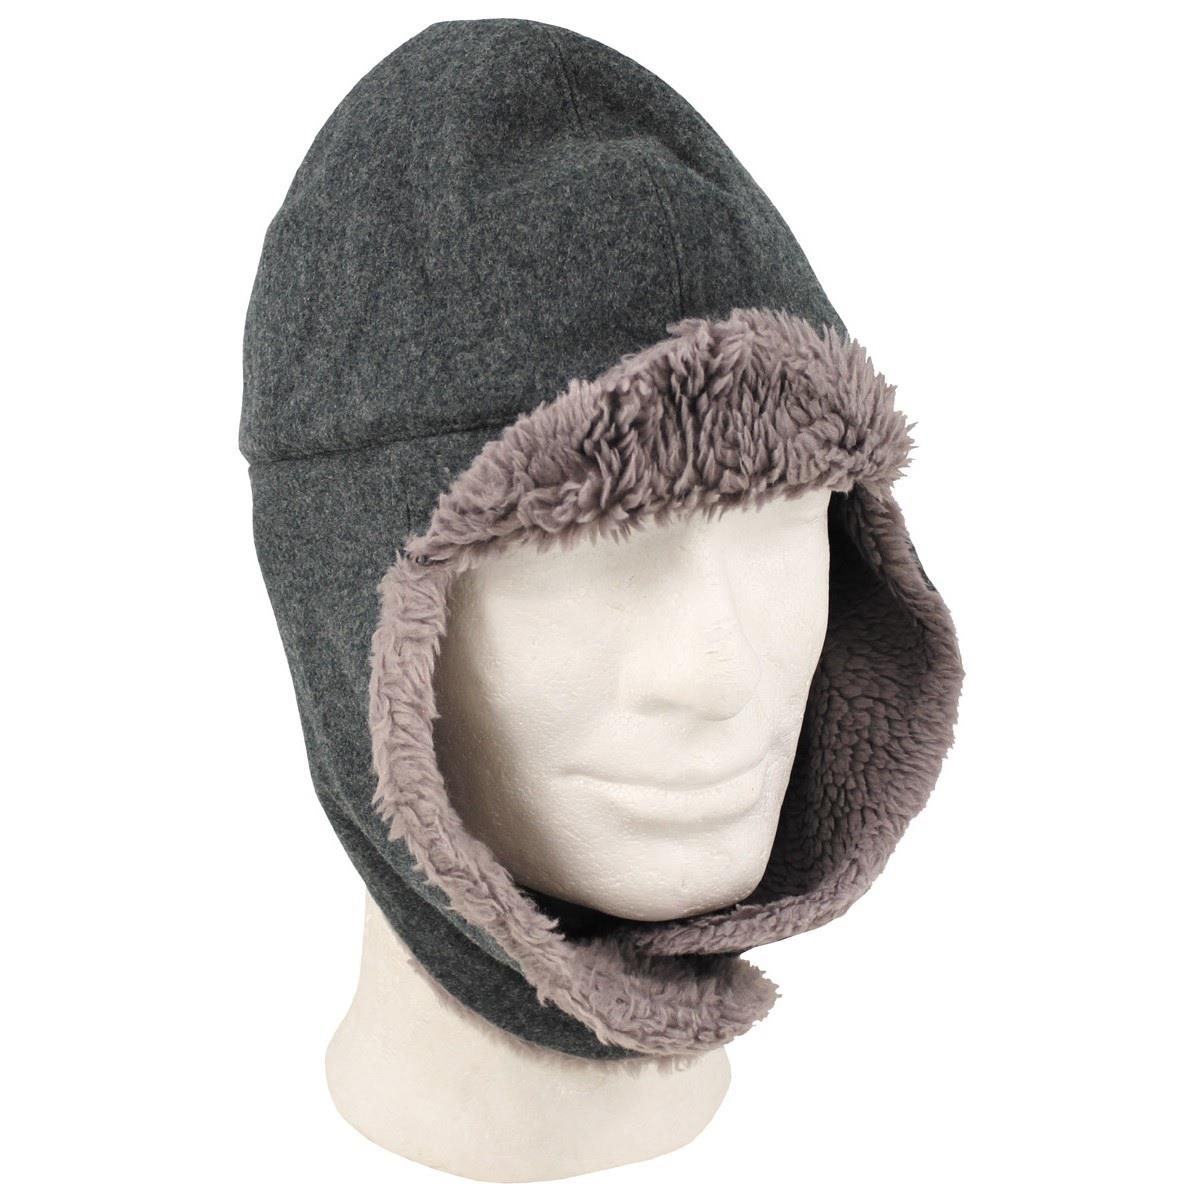 d9ecdae2762 Details about Vintage Swiss military surplus cold weather cap hat with ear  covers